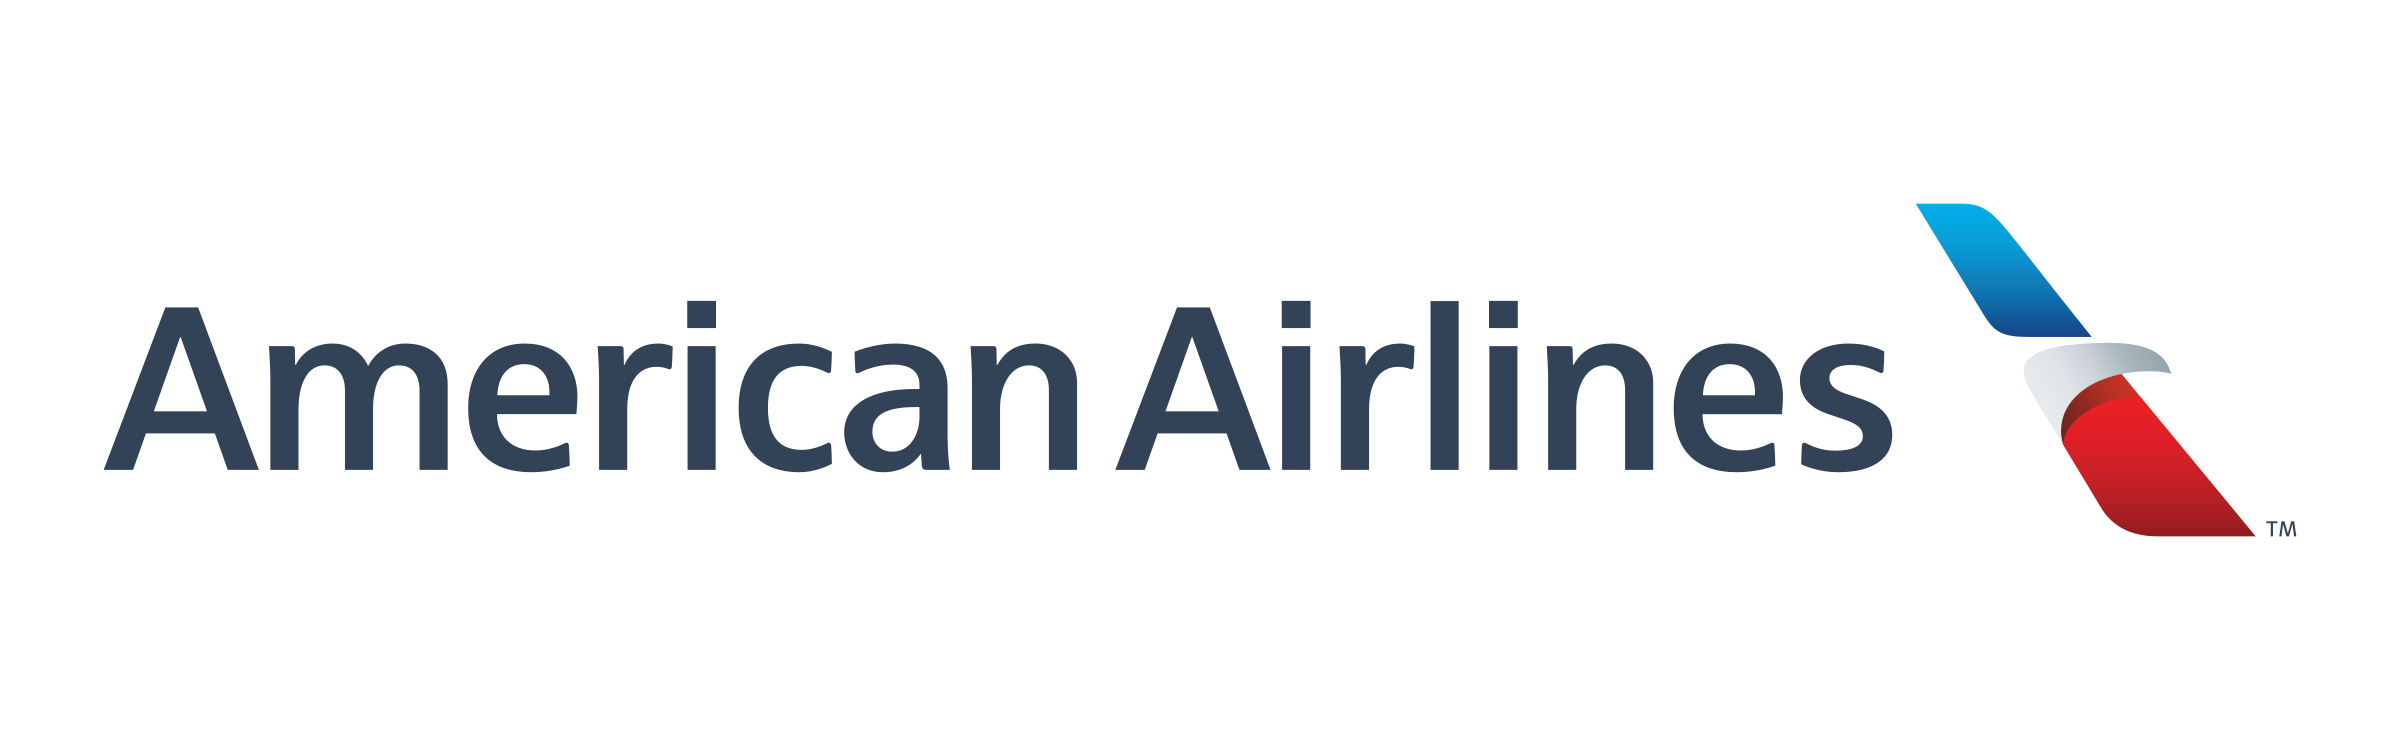 american-airlines-logo-png